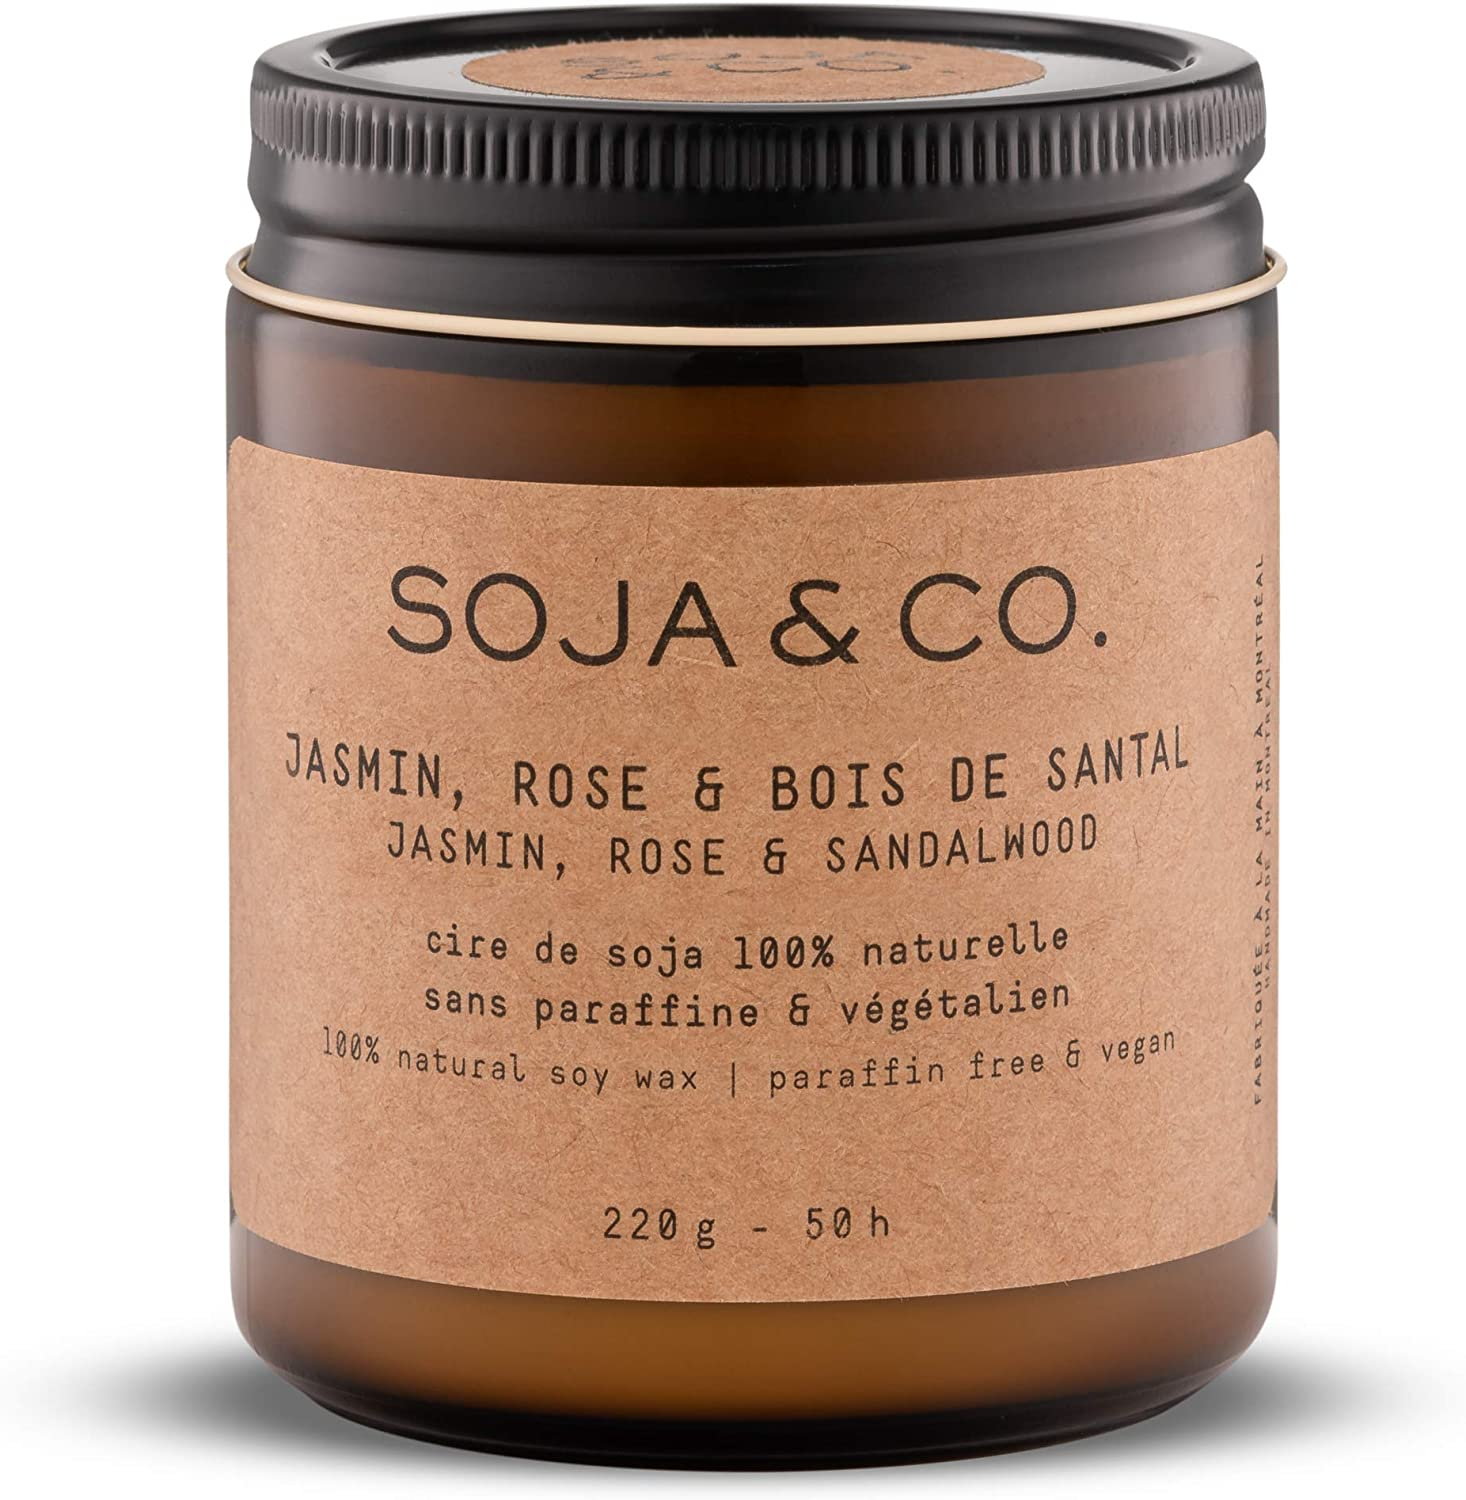 Eucalyptus 4oz SOJA/&CO Long Burning Glass Jar Soy Fragrance Candles Grapefruit Aroma Burns 25 Hours Aromatic Soy Wax Candle in Glass Jar Pamplemousse//Eucalyptus Scented Candles for Home